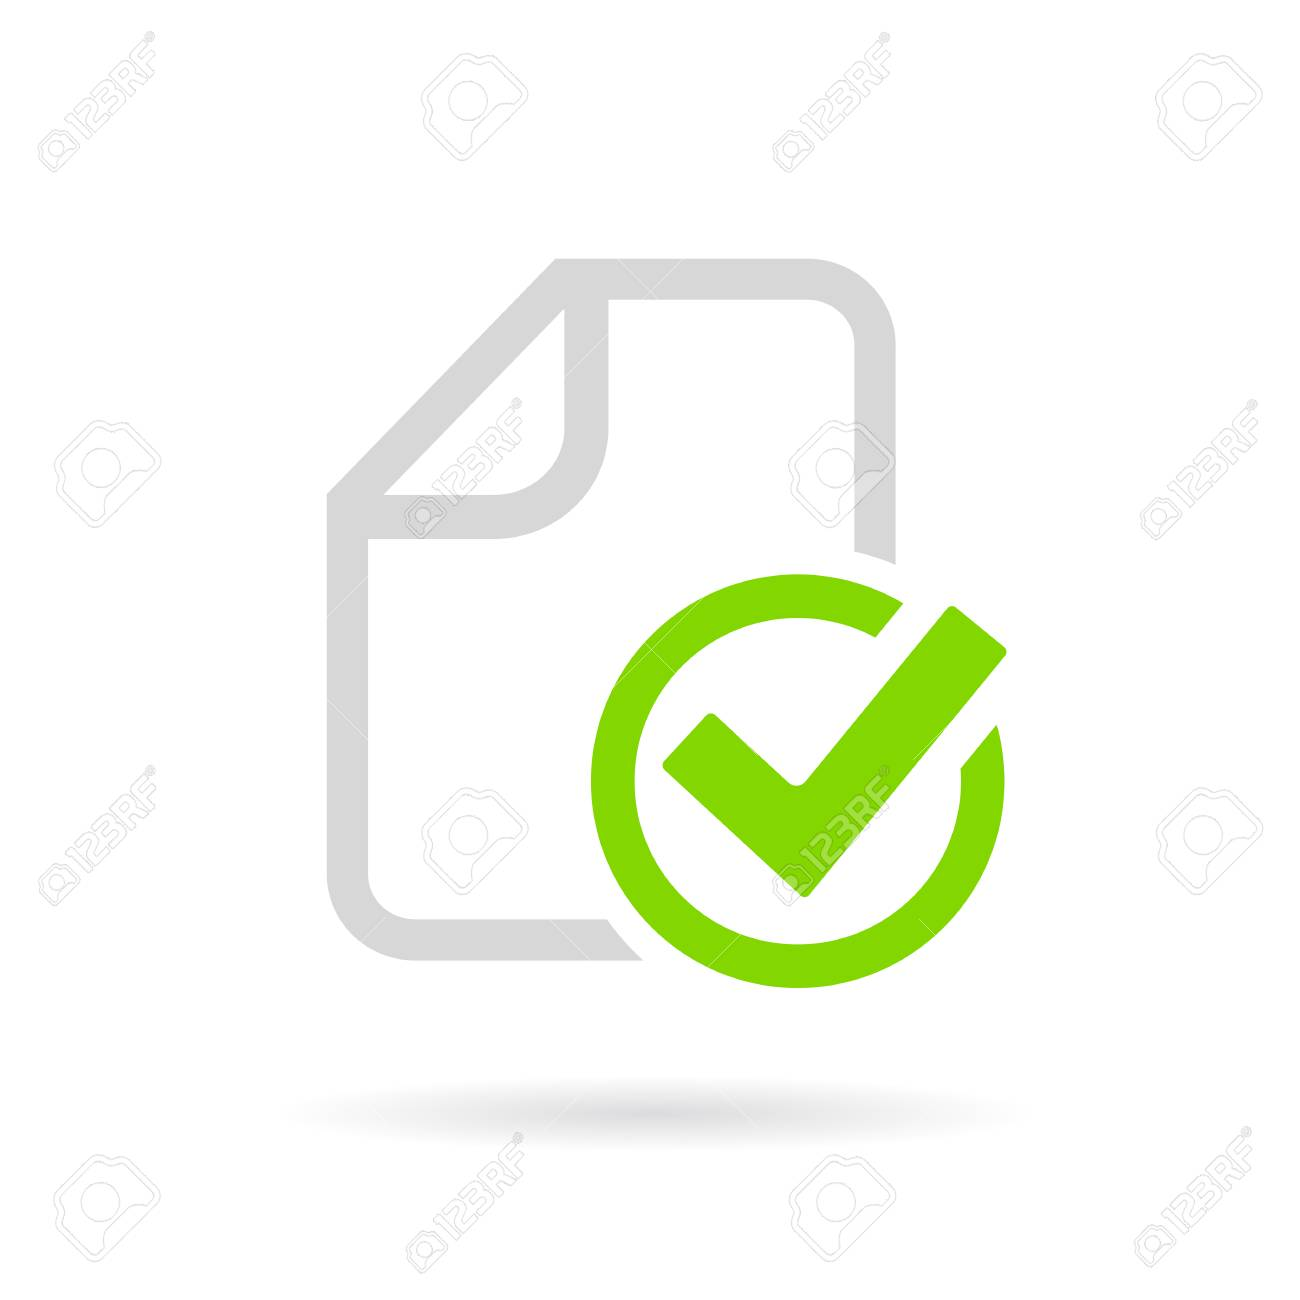 Paperwork completed vector pictogram - 90013037